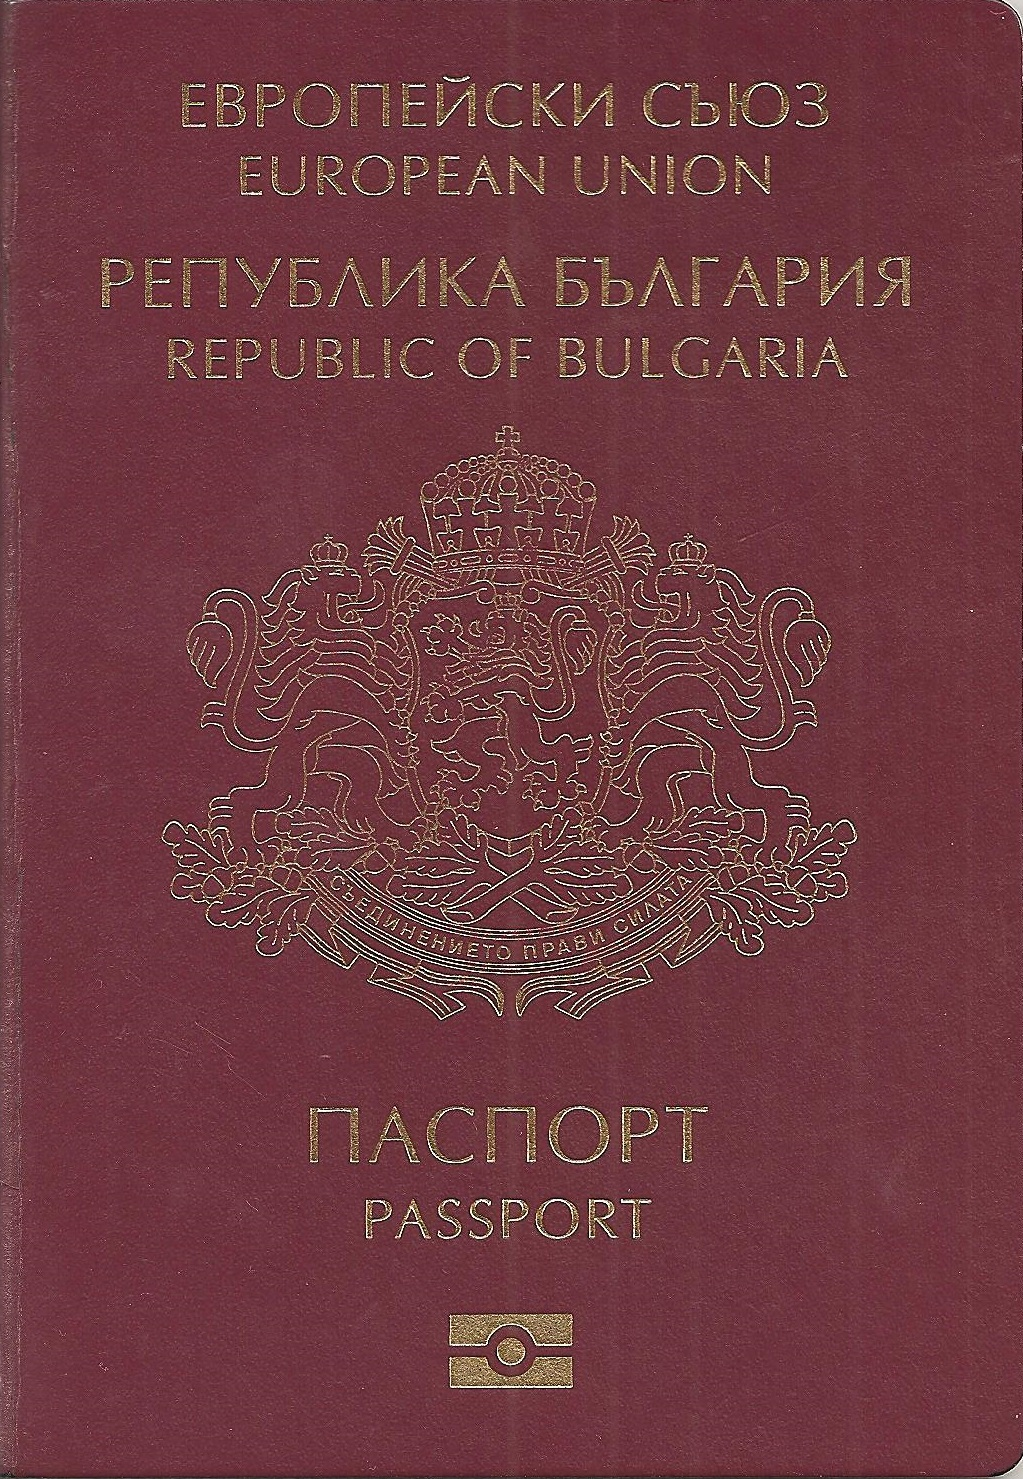 Bulgarian passport cover